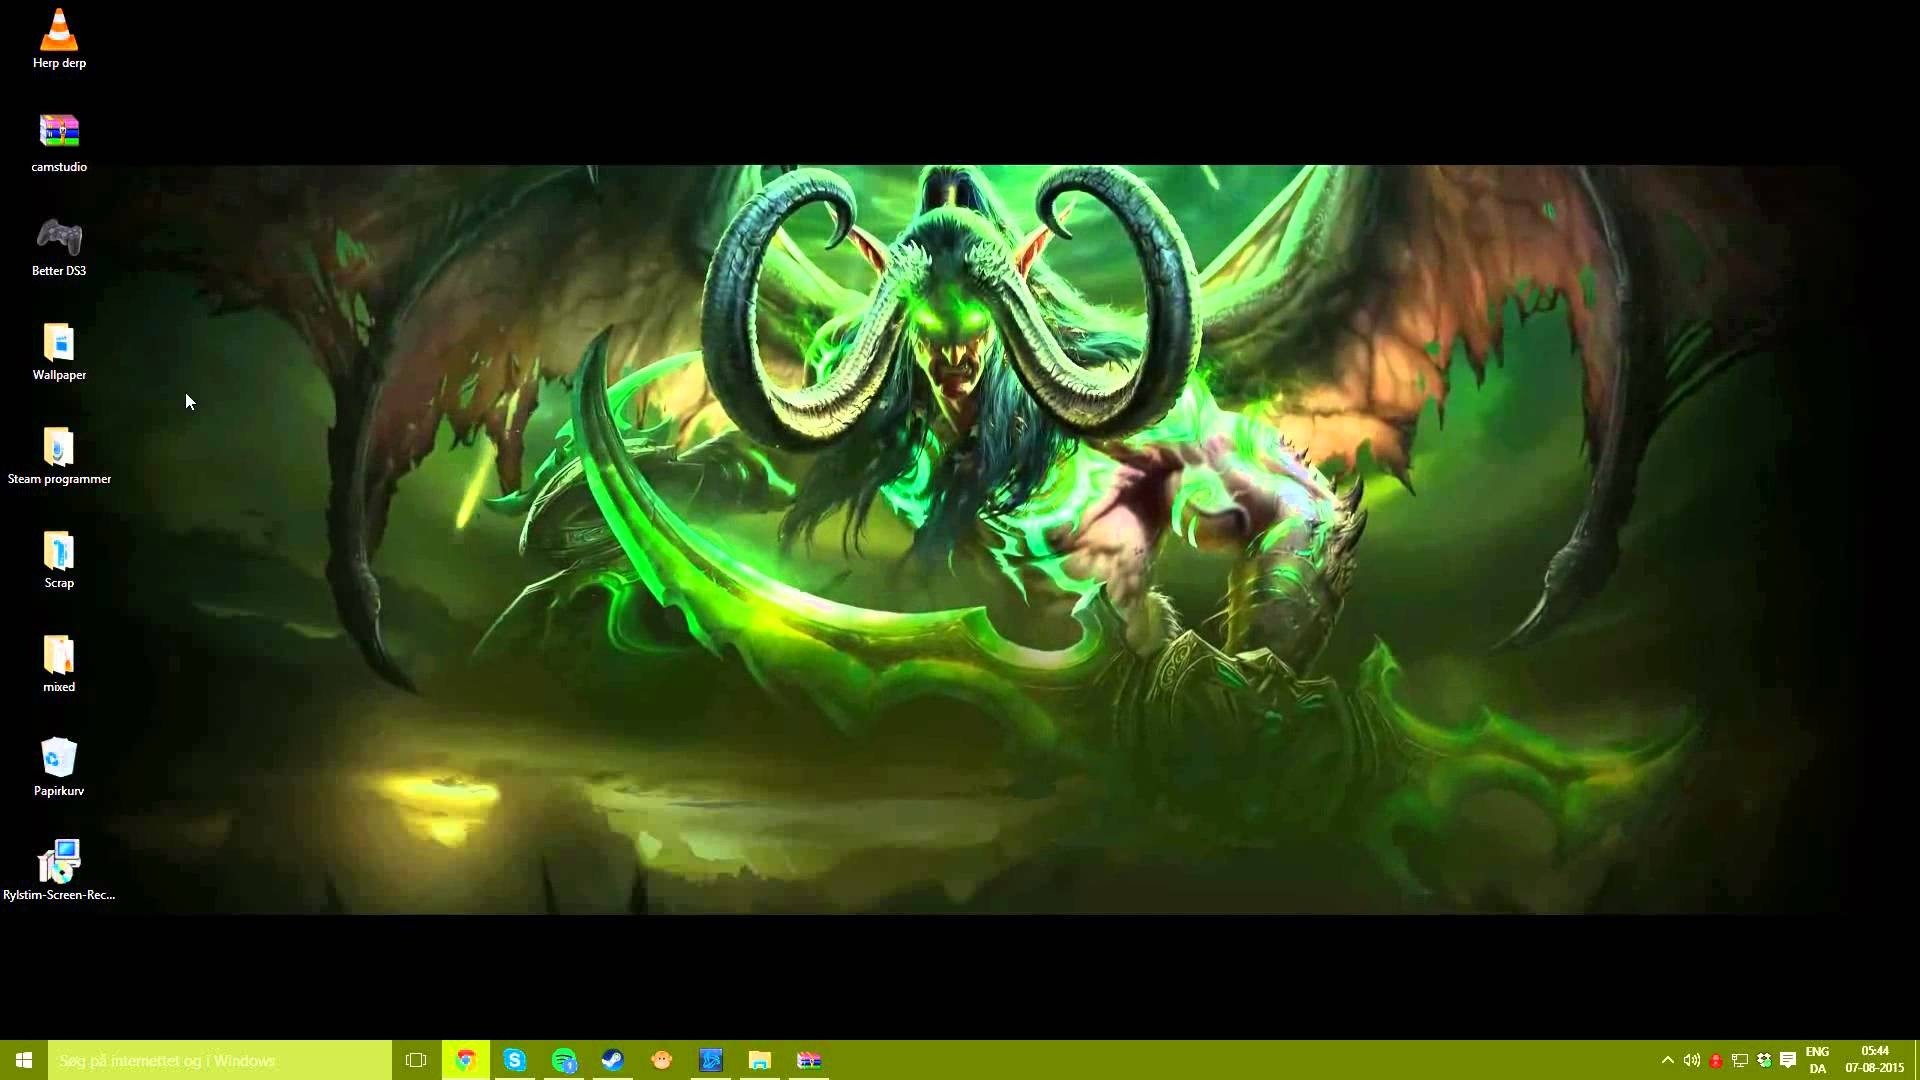 Res: 1920x1080, Best of Wow Legion Desktop Wallpaper Animated Free - Free World of Warcraft  Live Wallpaper 5